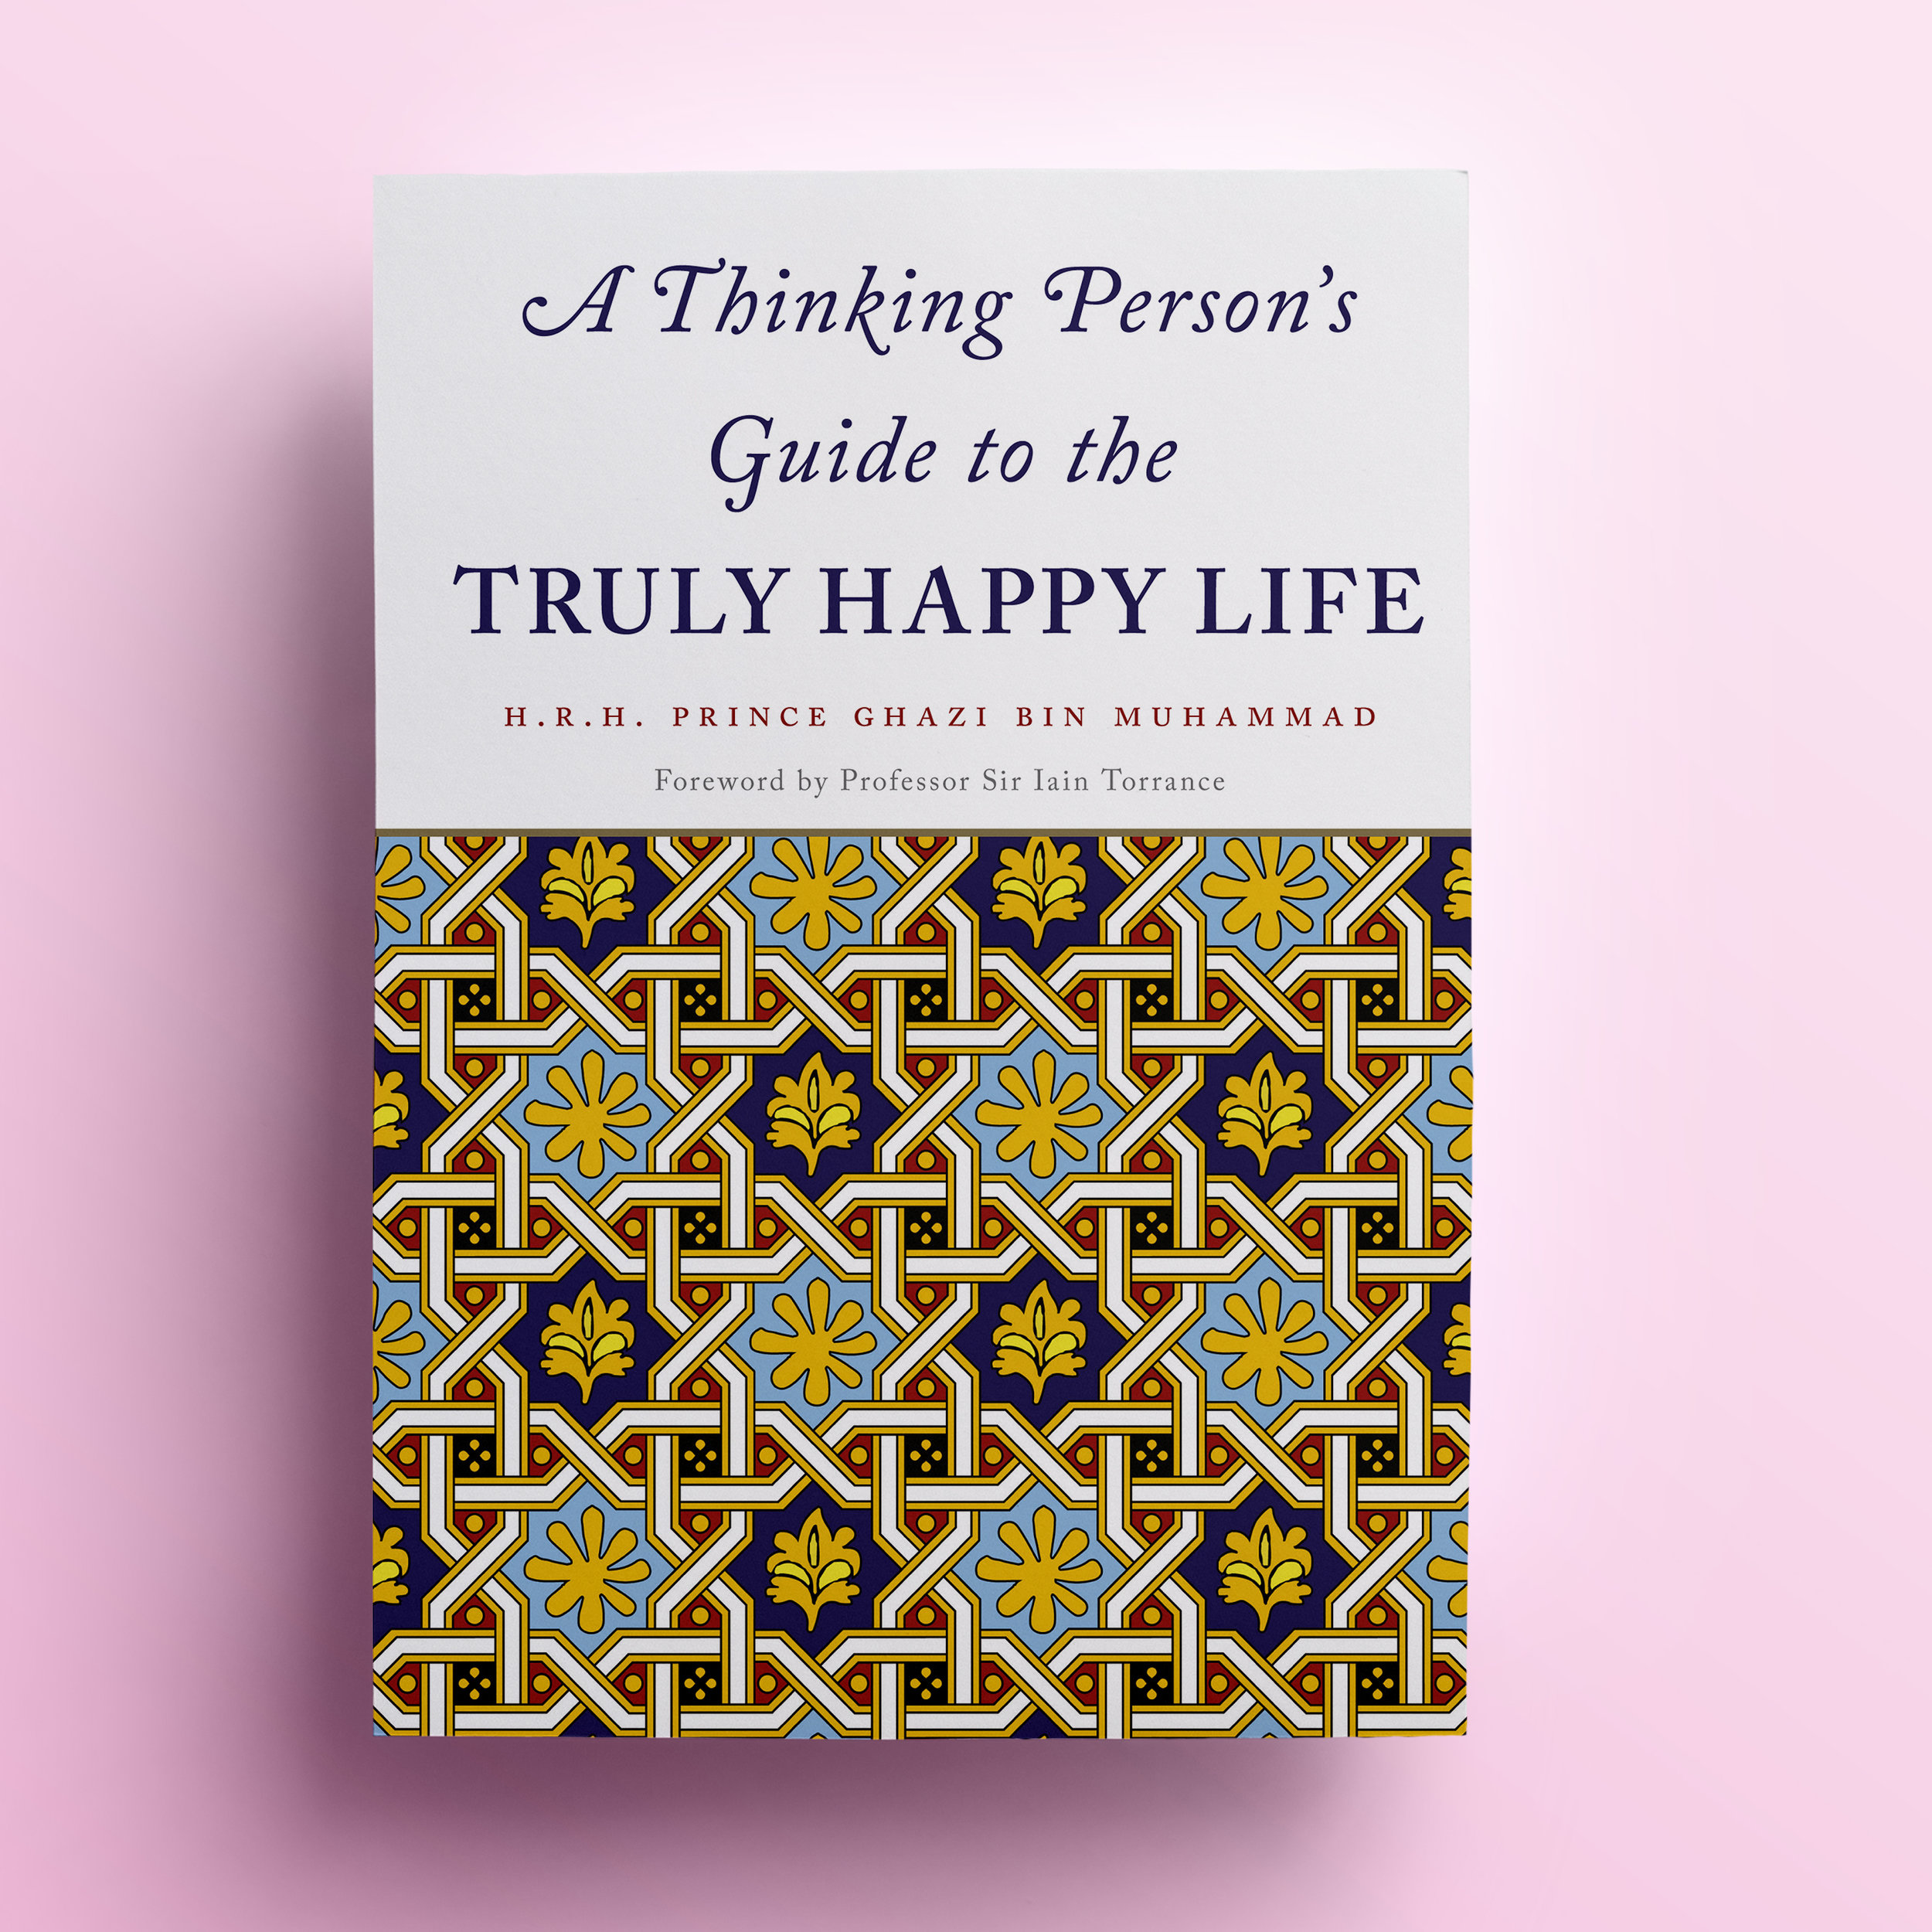 July 2019 - A Thinking Person's Guide to the Truly Happy Life by H.R.H Prince Ghazi Bin MuhammadRead Discussions